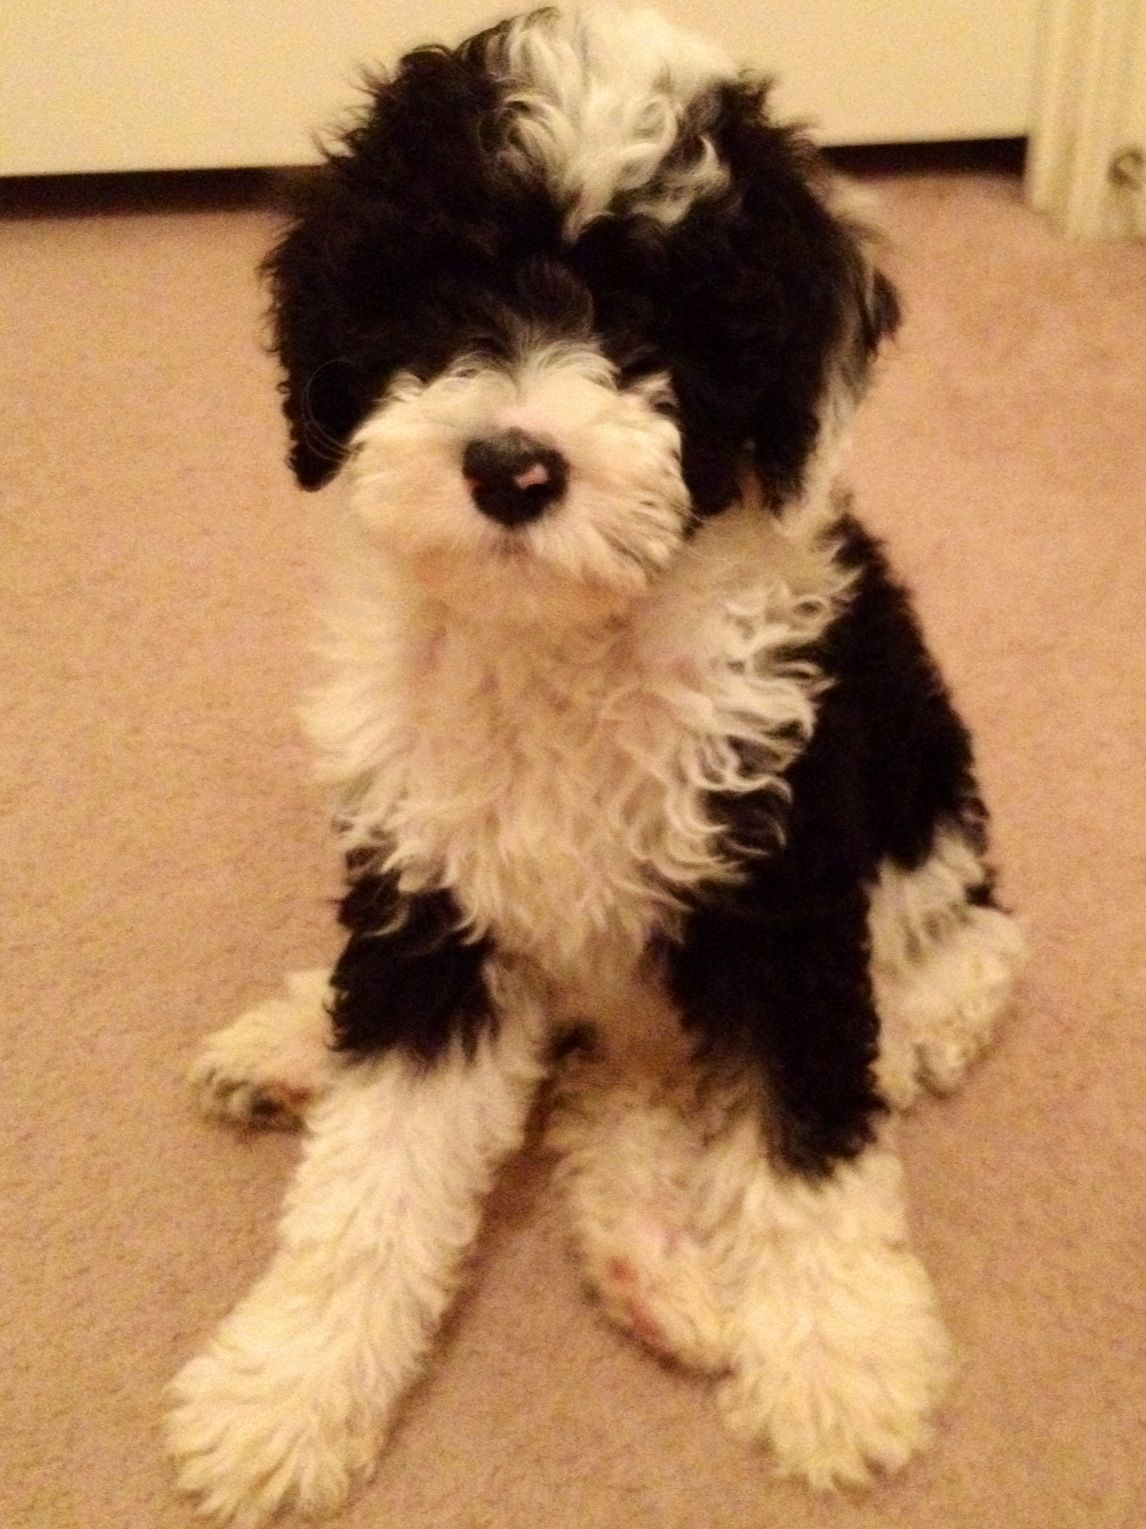 Sheepadoodle 3 Seems Like You Cross A Poodle With Anything